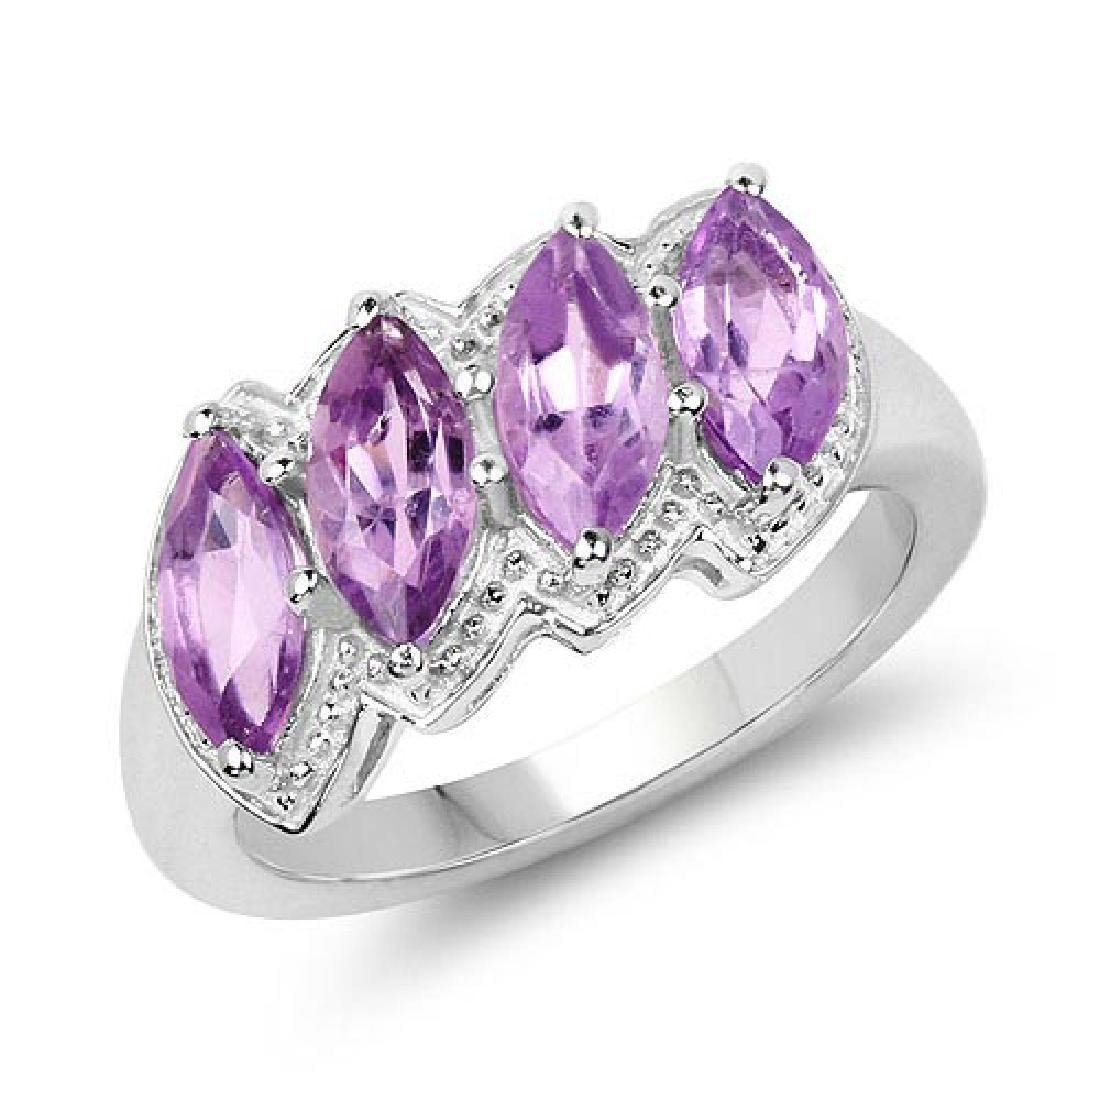 2.12 Carat Genuine Amethyst .925 Sterling Silver Ring